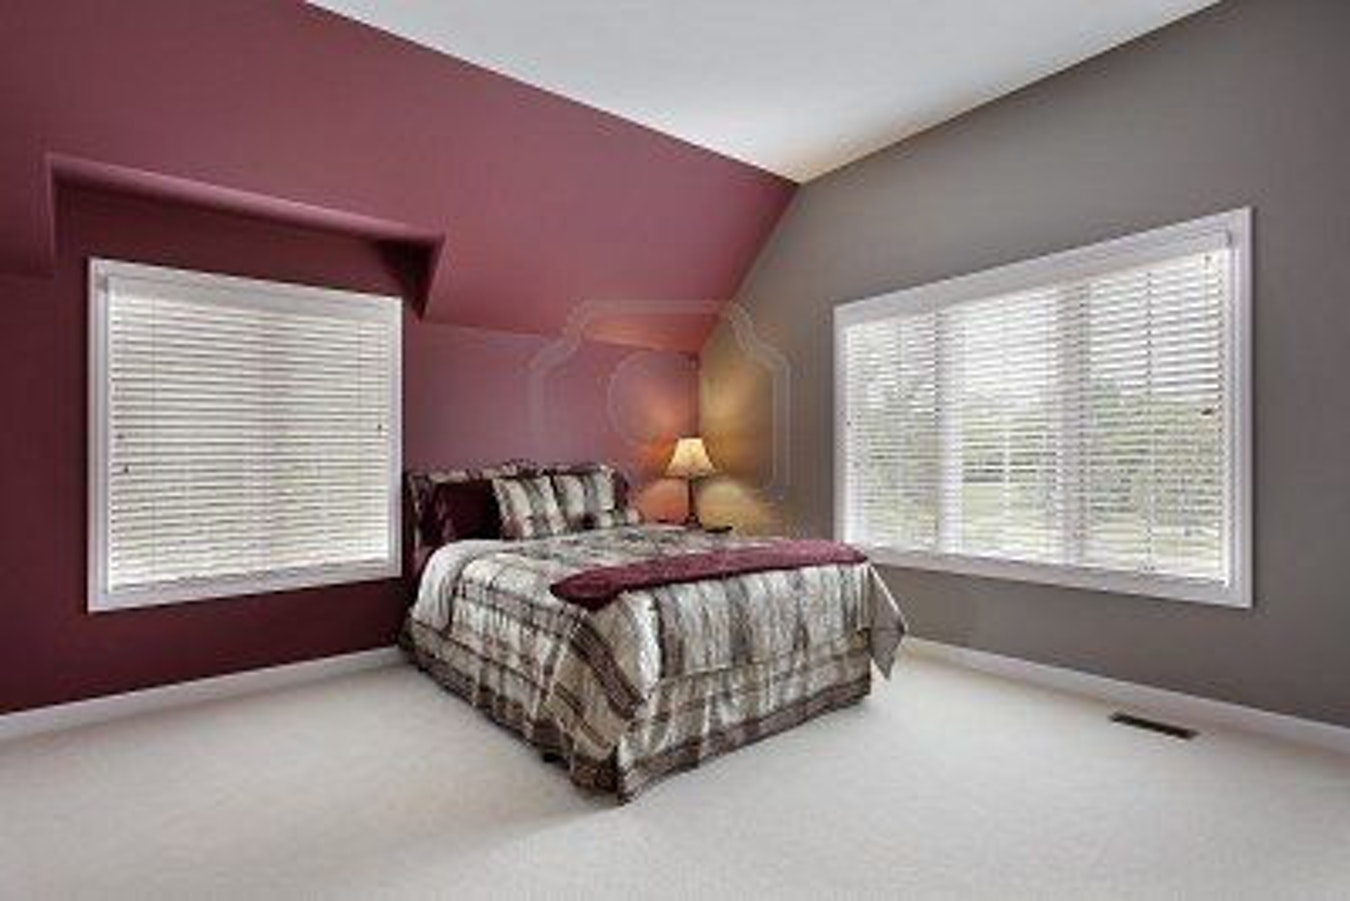 Burgundy And Grey Bedroom Maroon Walls Pink Entertaining Depiction Regarding Most Recent Maroon Wall Accents (Gallery 7 of 15)